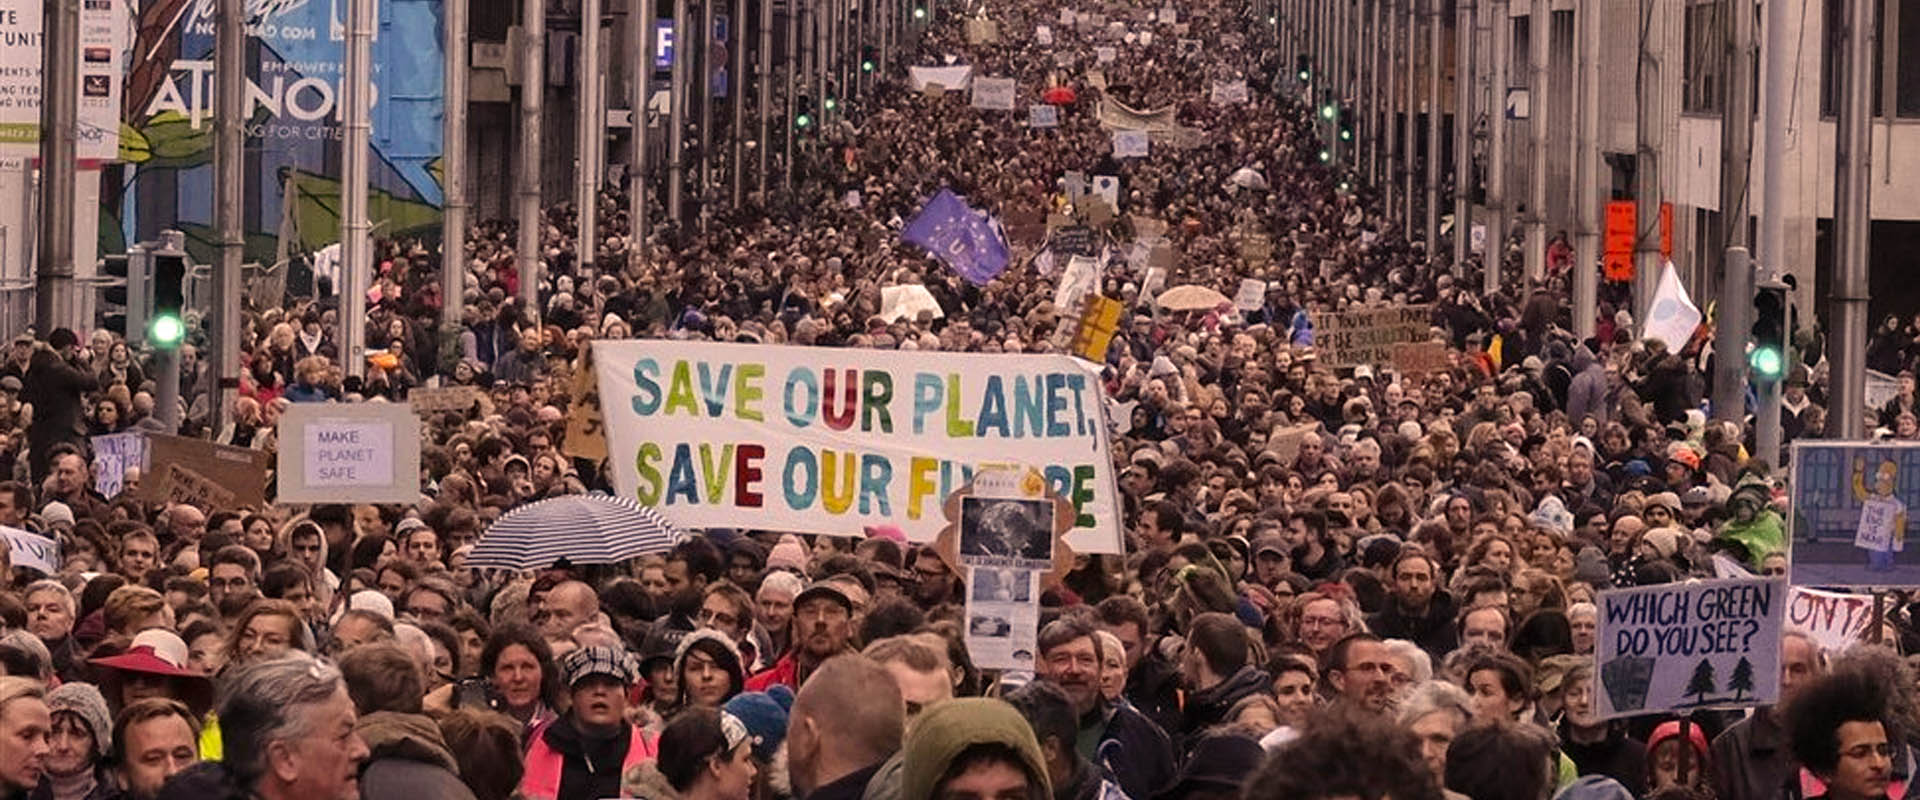 27 januari: Klimaatmars in Brussel